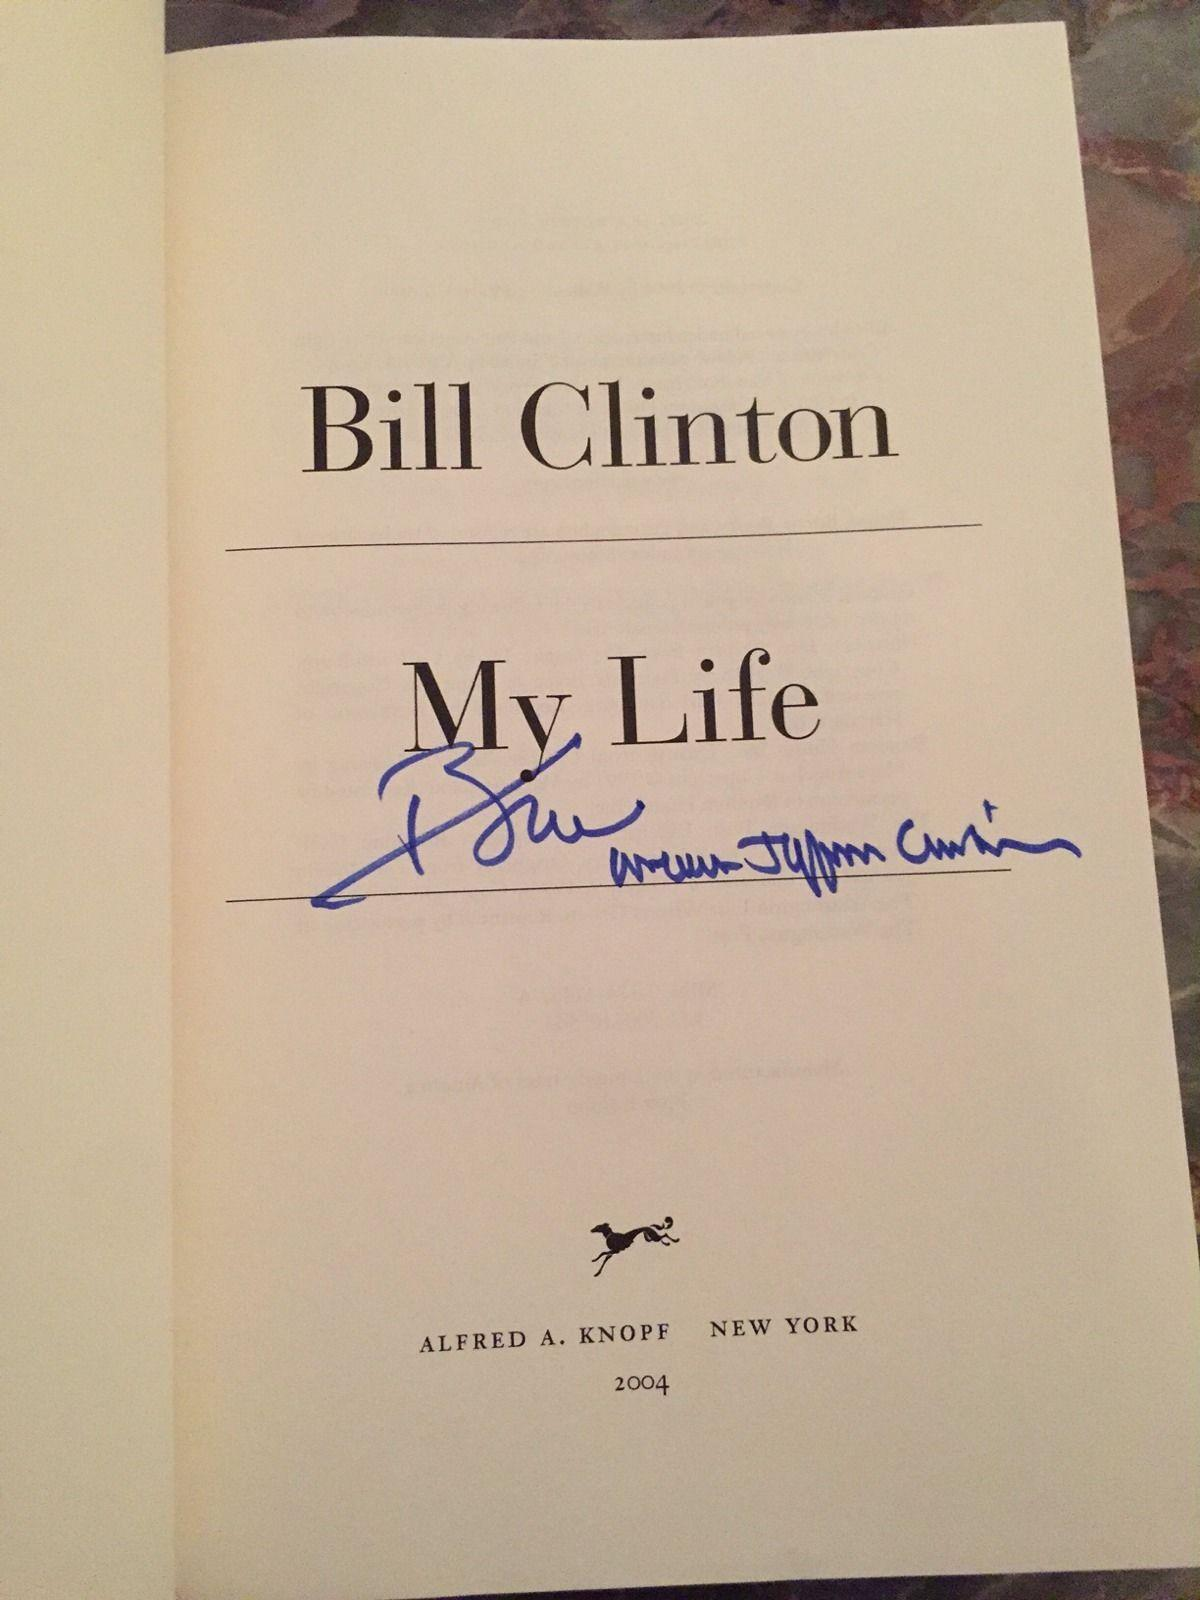 an introduction to the life of william jefferson clinton